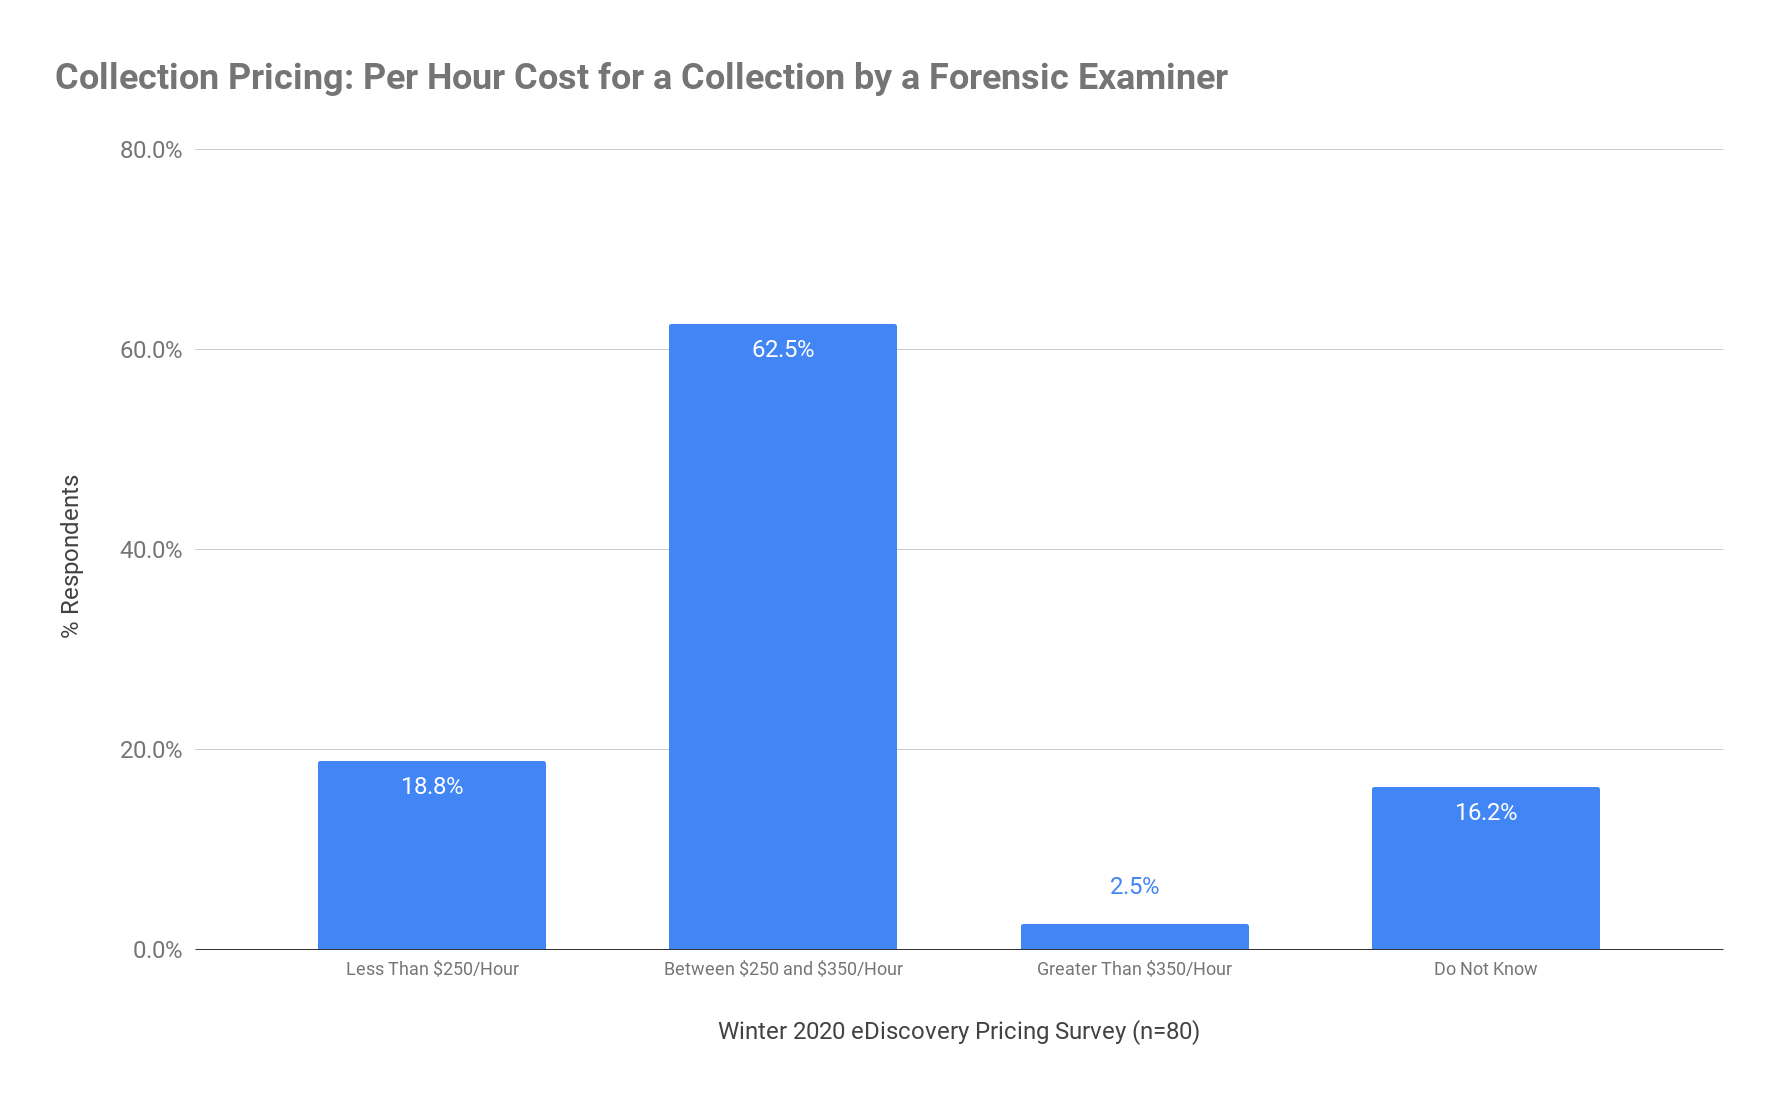 Collection Pricing - Per Hour Cost for a Collection by a Forensic Examiner - Winter 2020